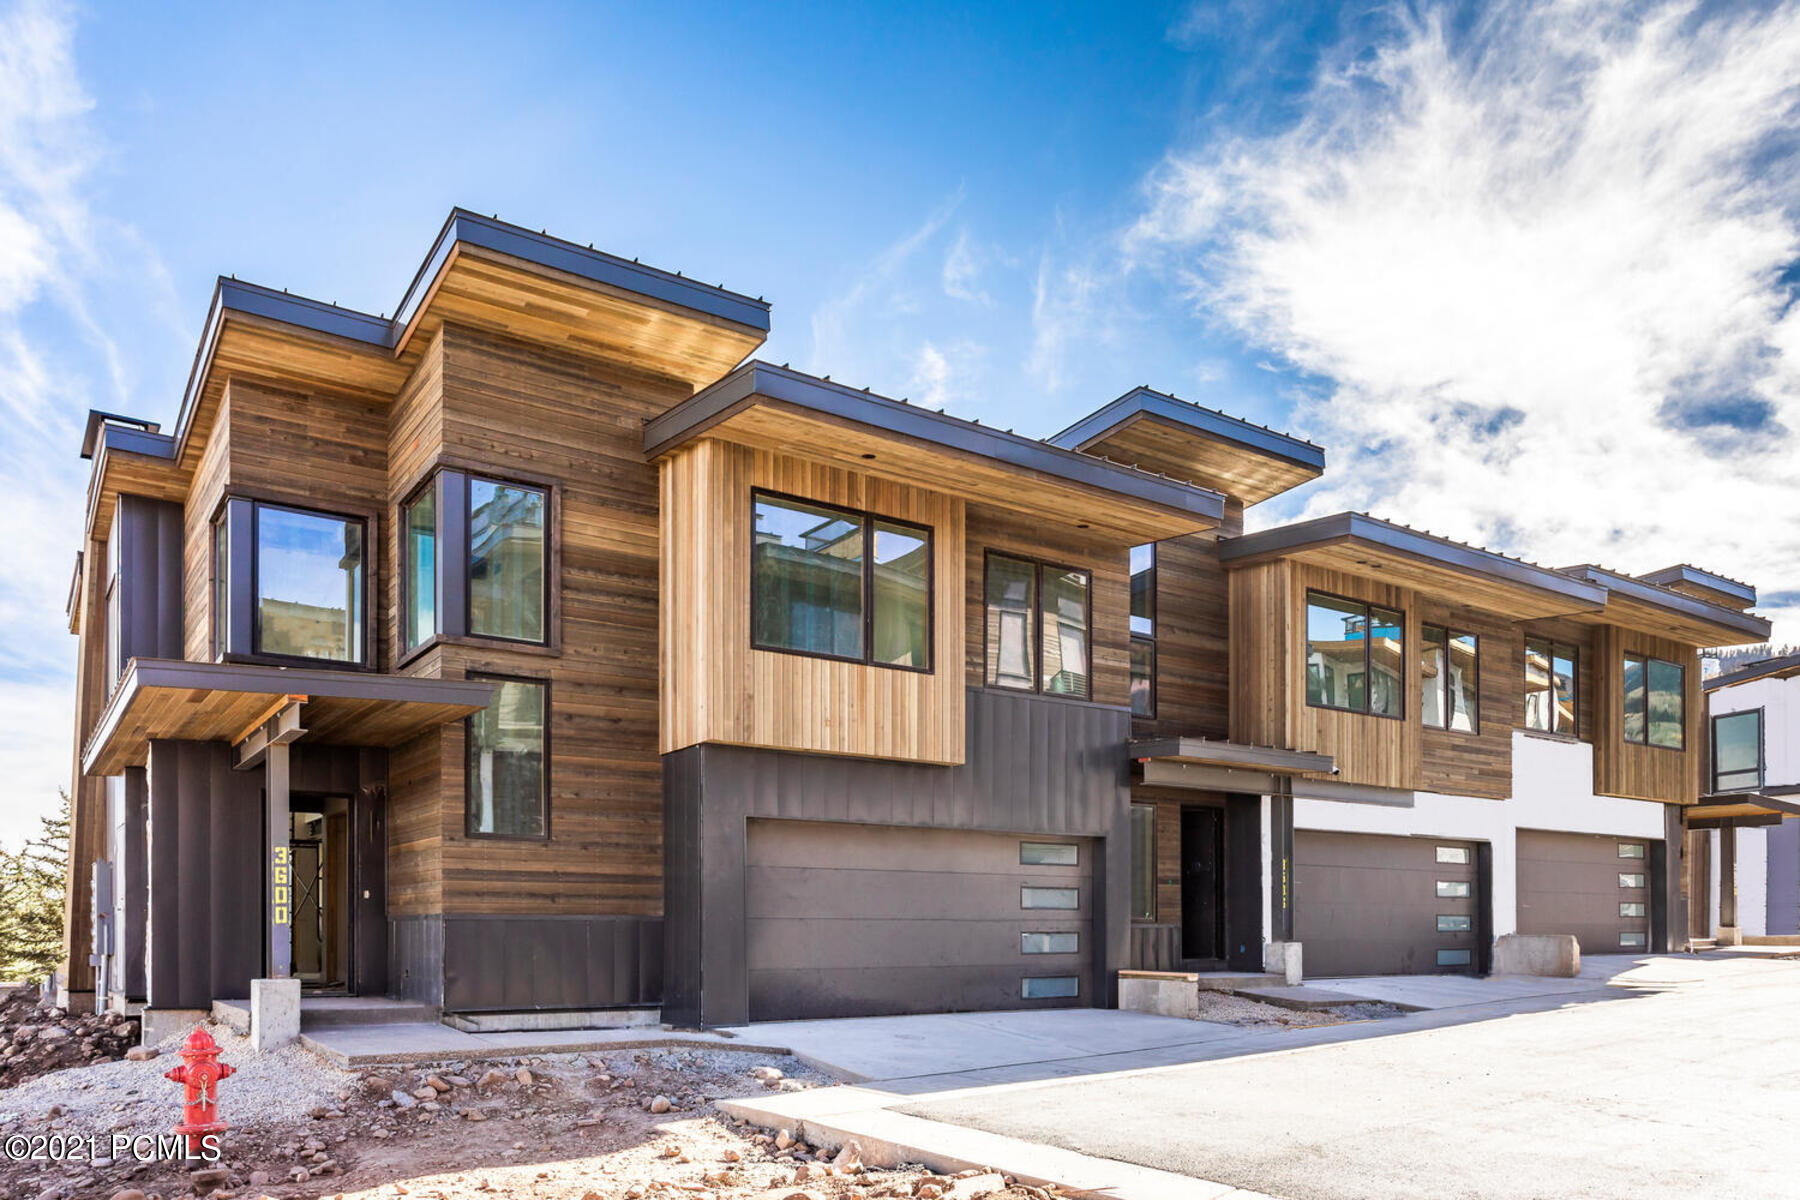 3472 Ridgeline Drive, Park City, Utah 84098, 5 Bedrooms Bedrooms, ,6 BathroomsBathrooms,Condominium,For Sale,Ridgeline,12100594